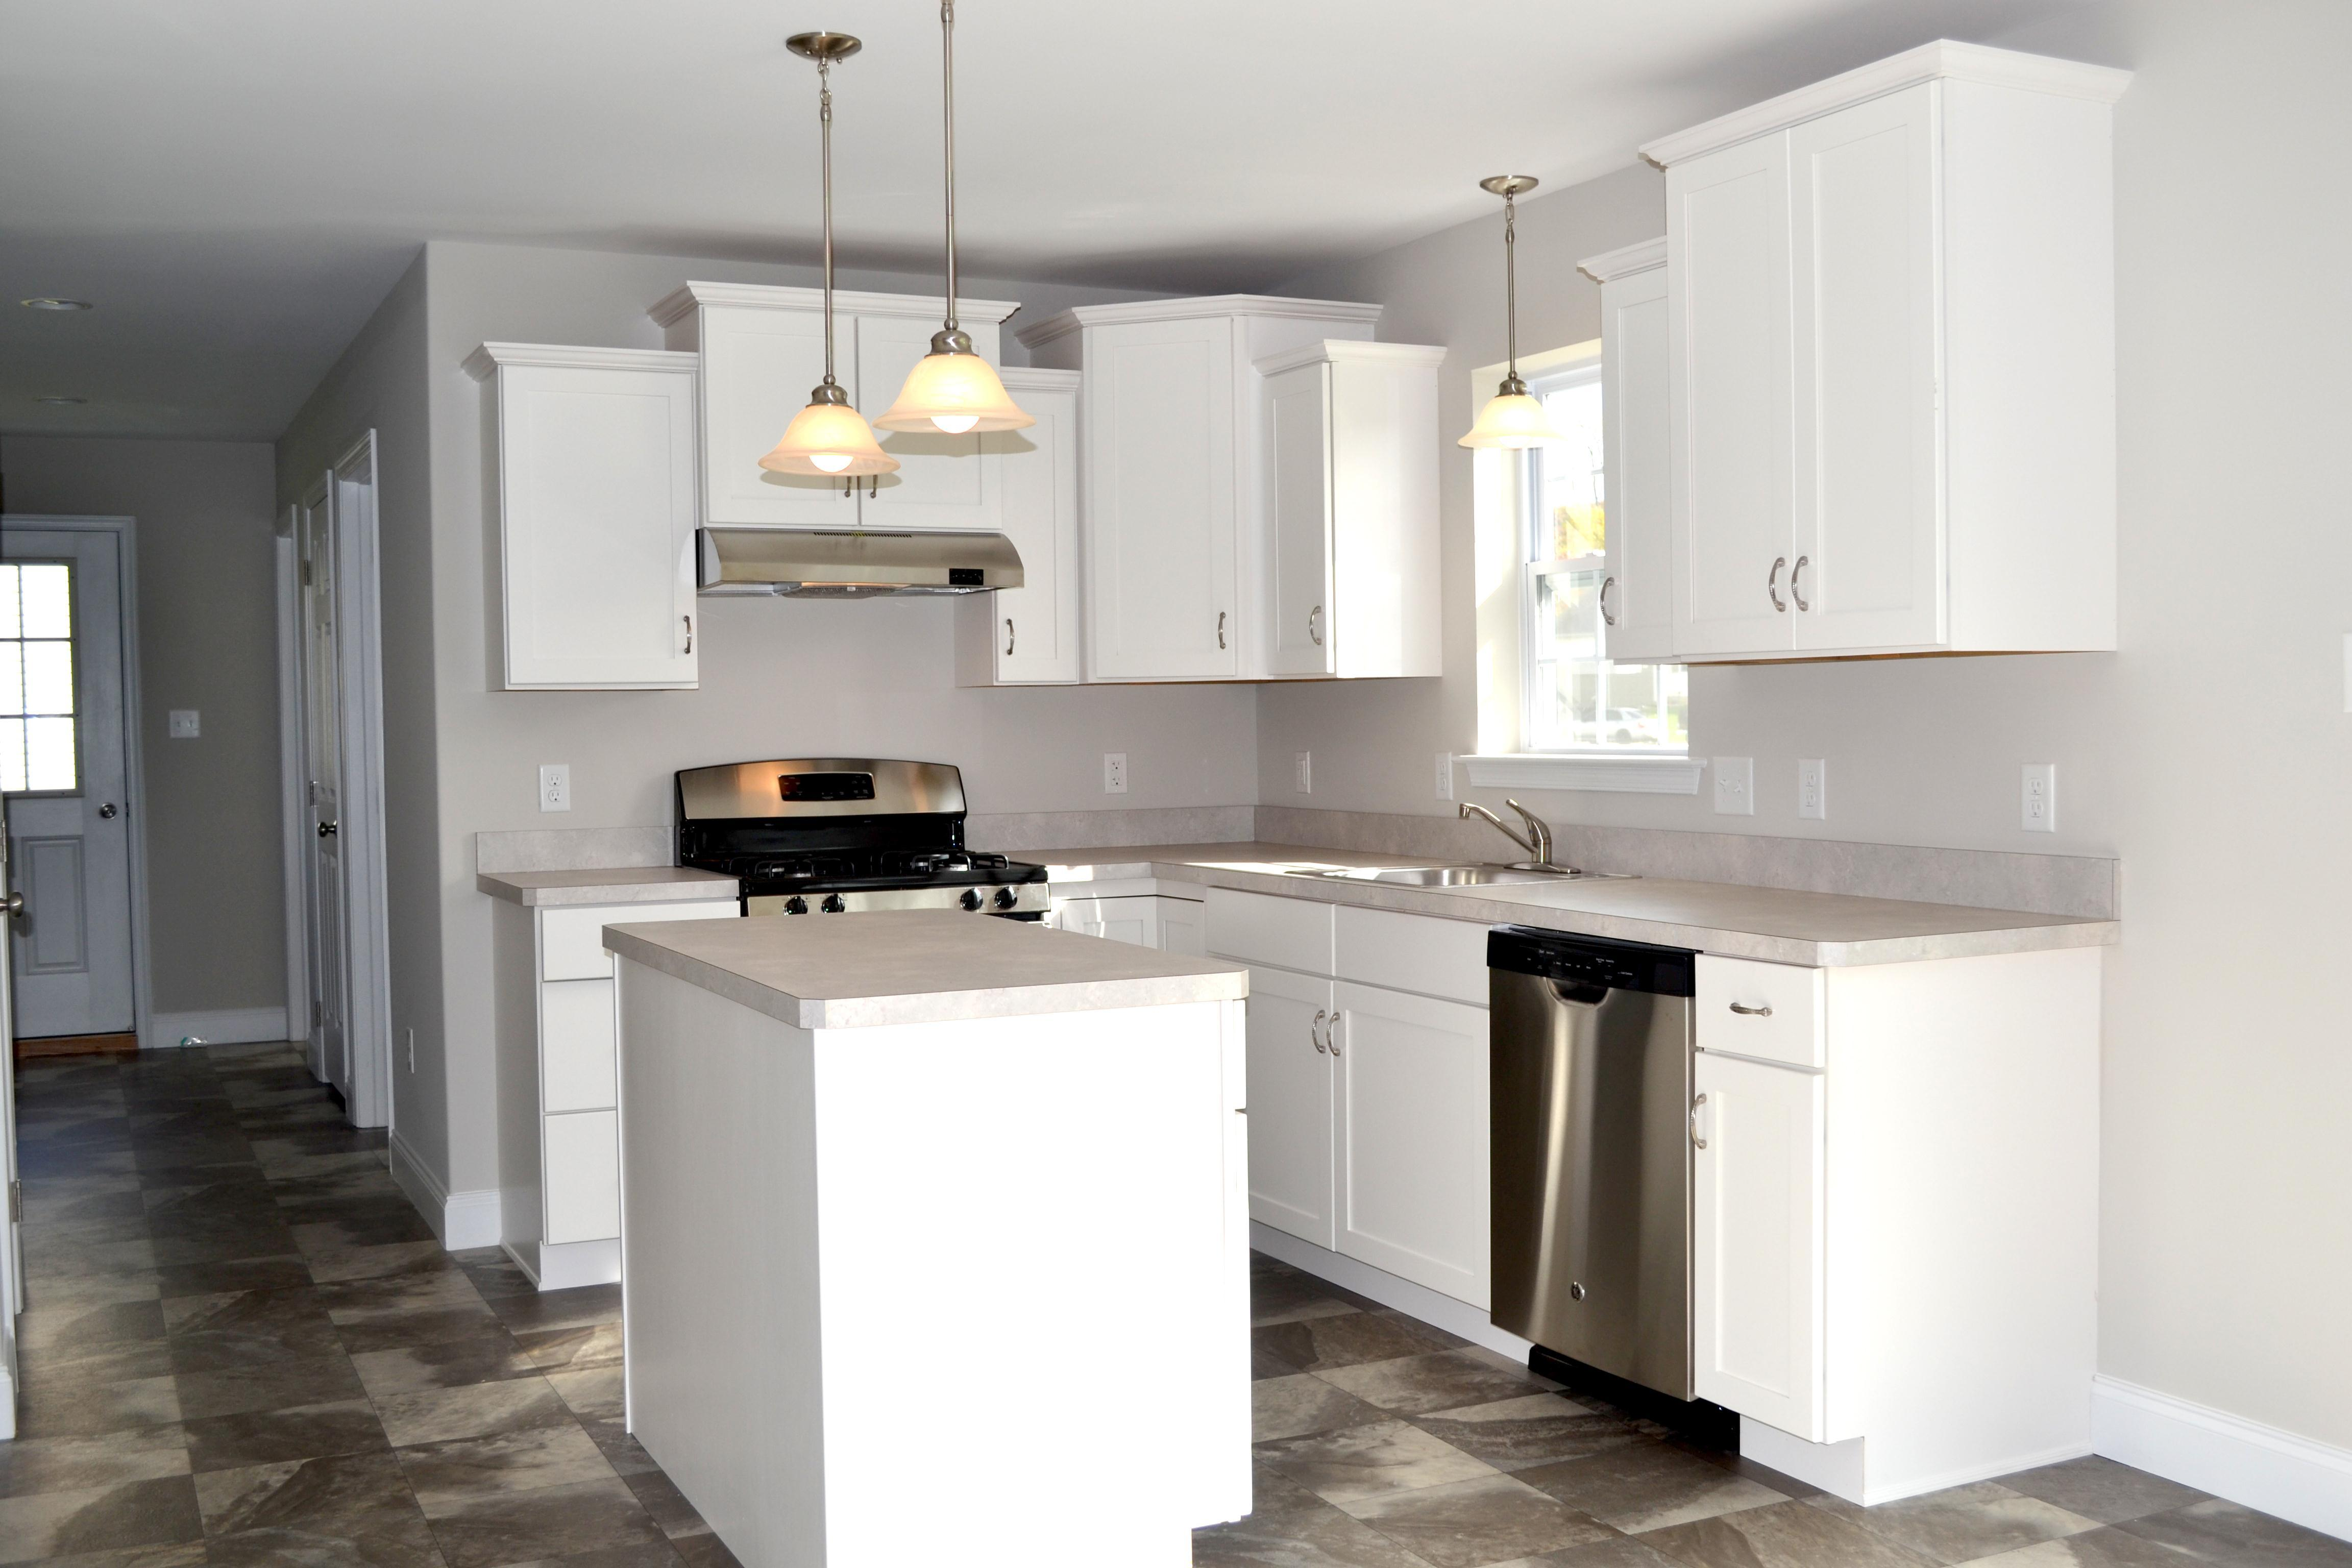 Kitchen featured in the Cambridge By Forino Homes in Reading, PA